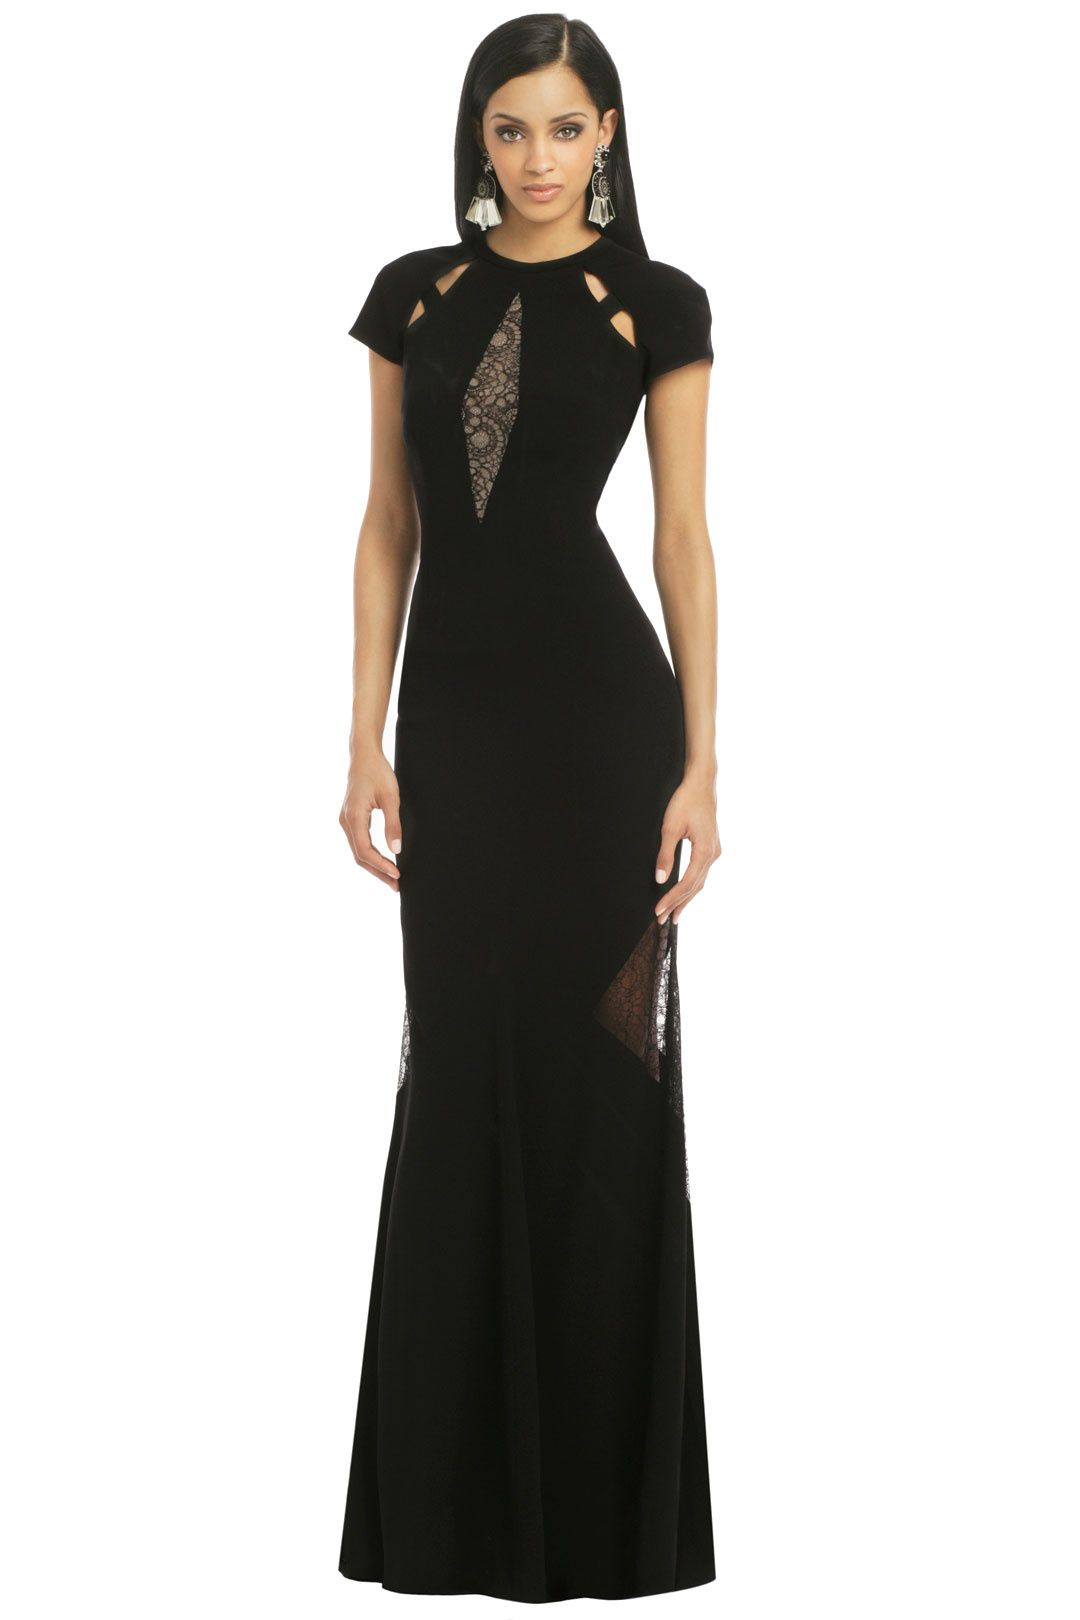 0cc3684d350fe Rent Come Hither Gown by Bibhu Mohapatra for $80 – $110 only at Rent the  Runway.